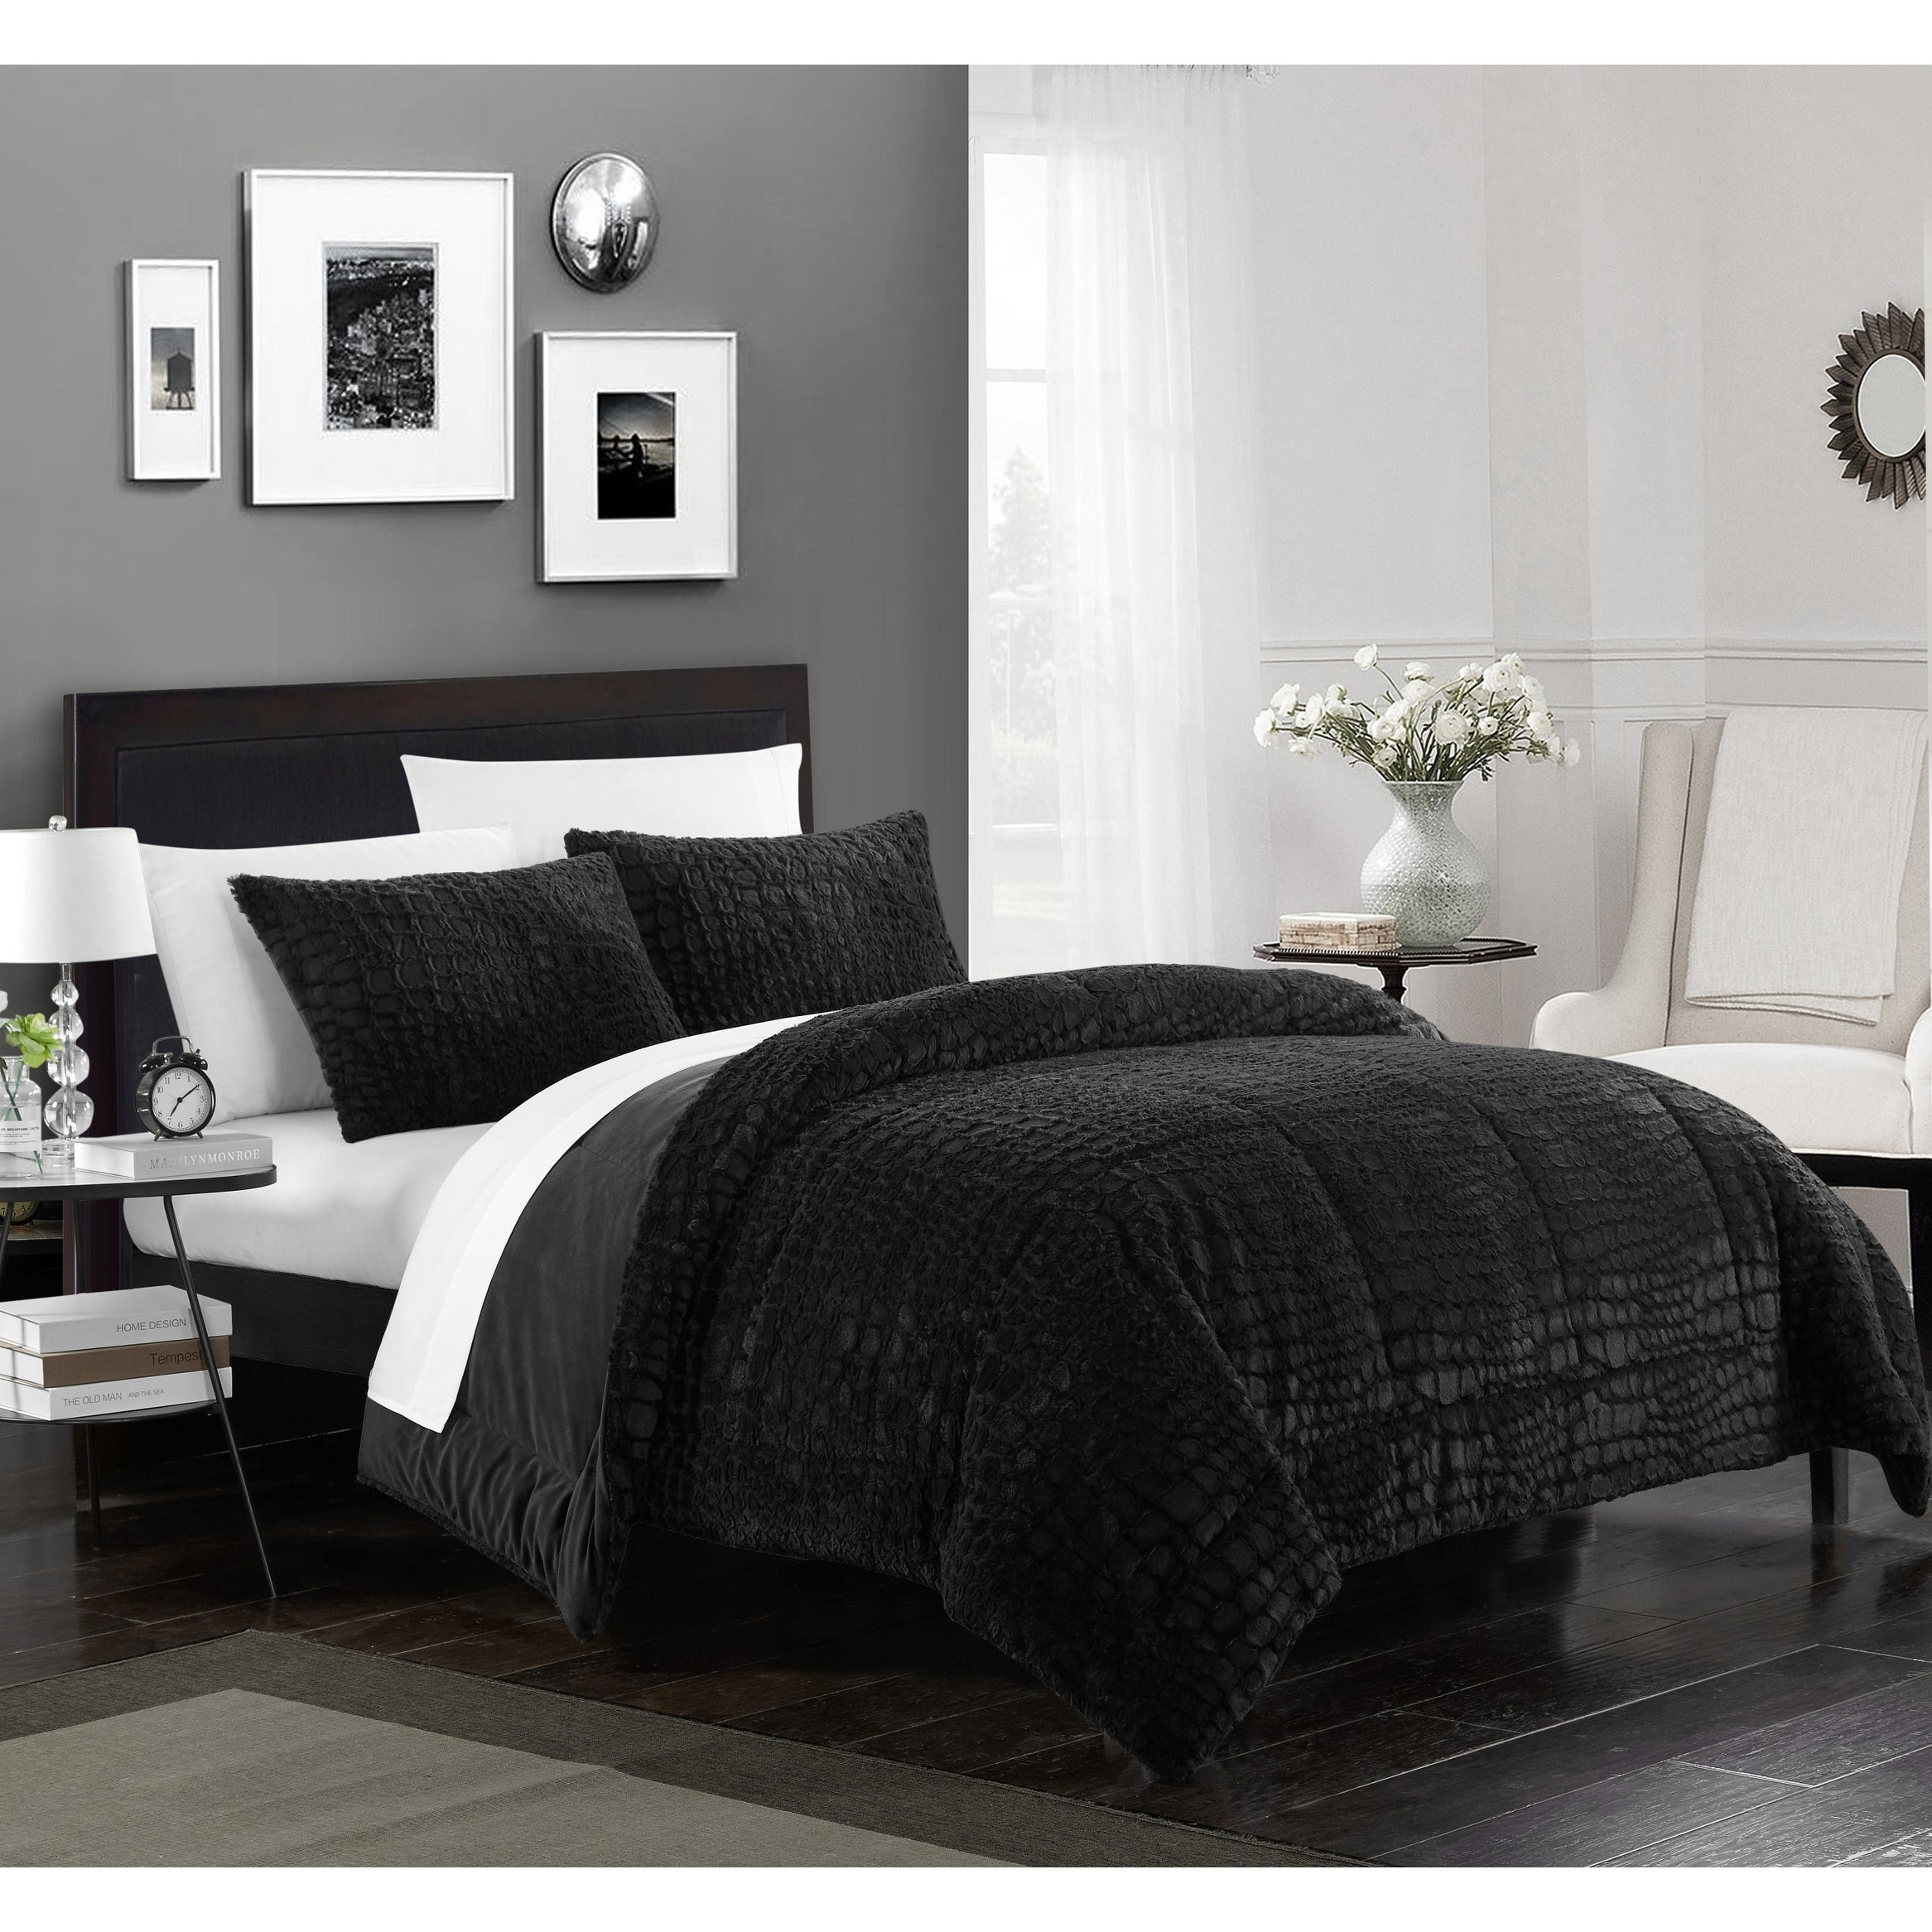 gray innovative modern for interior awesome l color comforter also cool bedroom blue men david with calm and has white popular brown from inno pattern home credited motif sets design furniture subscribed